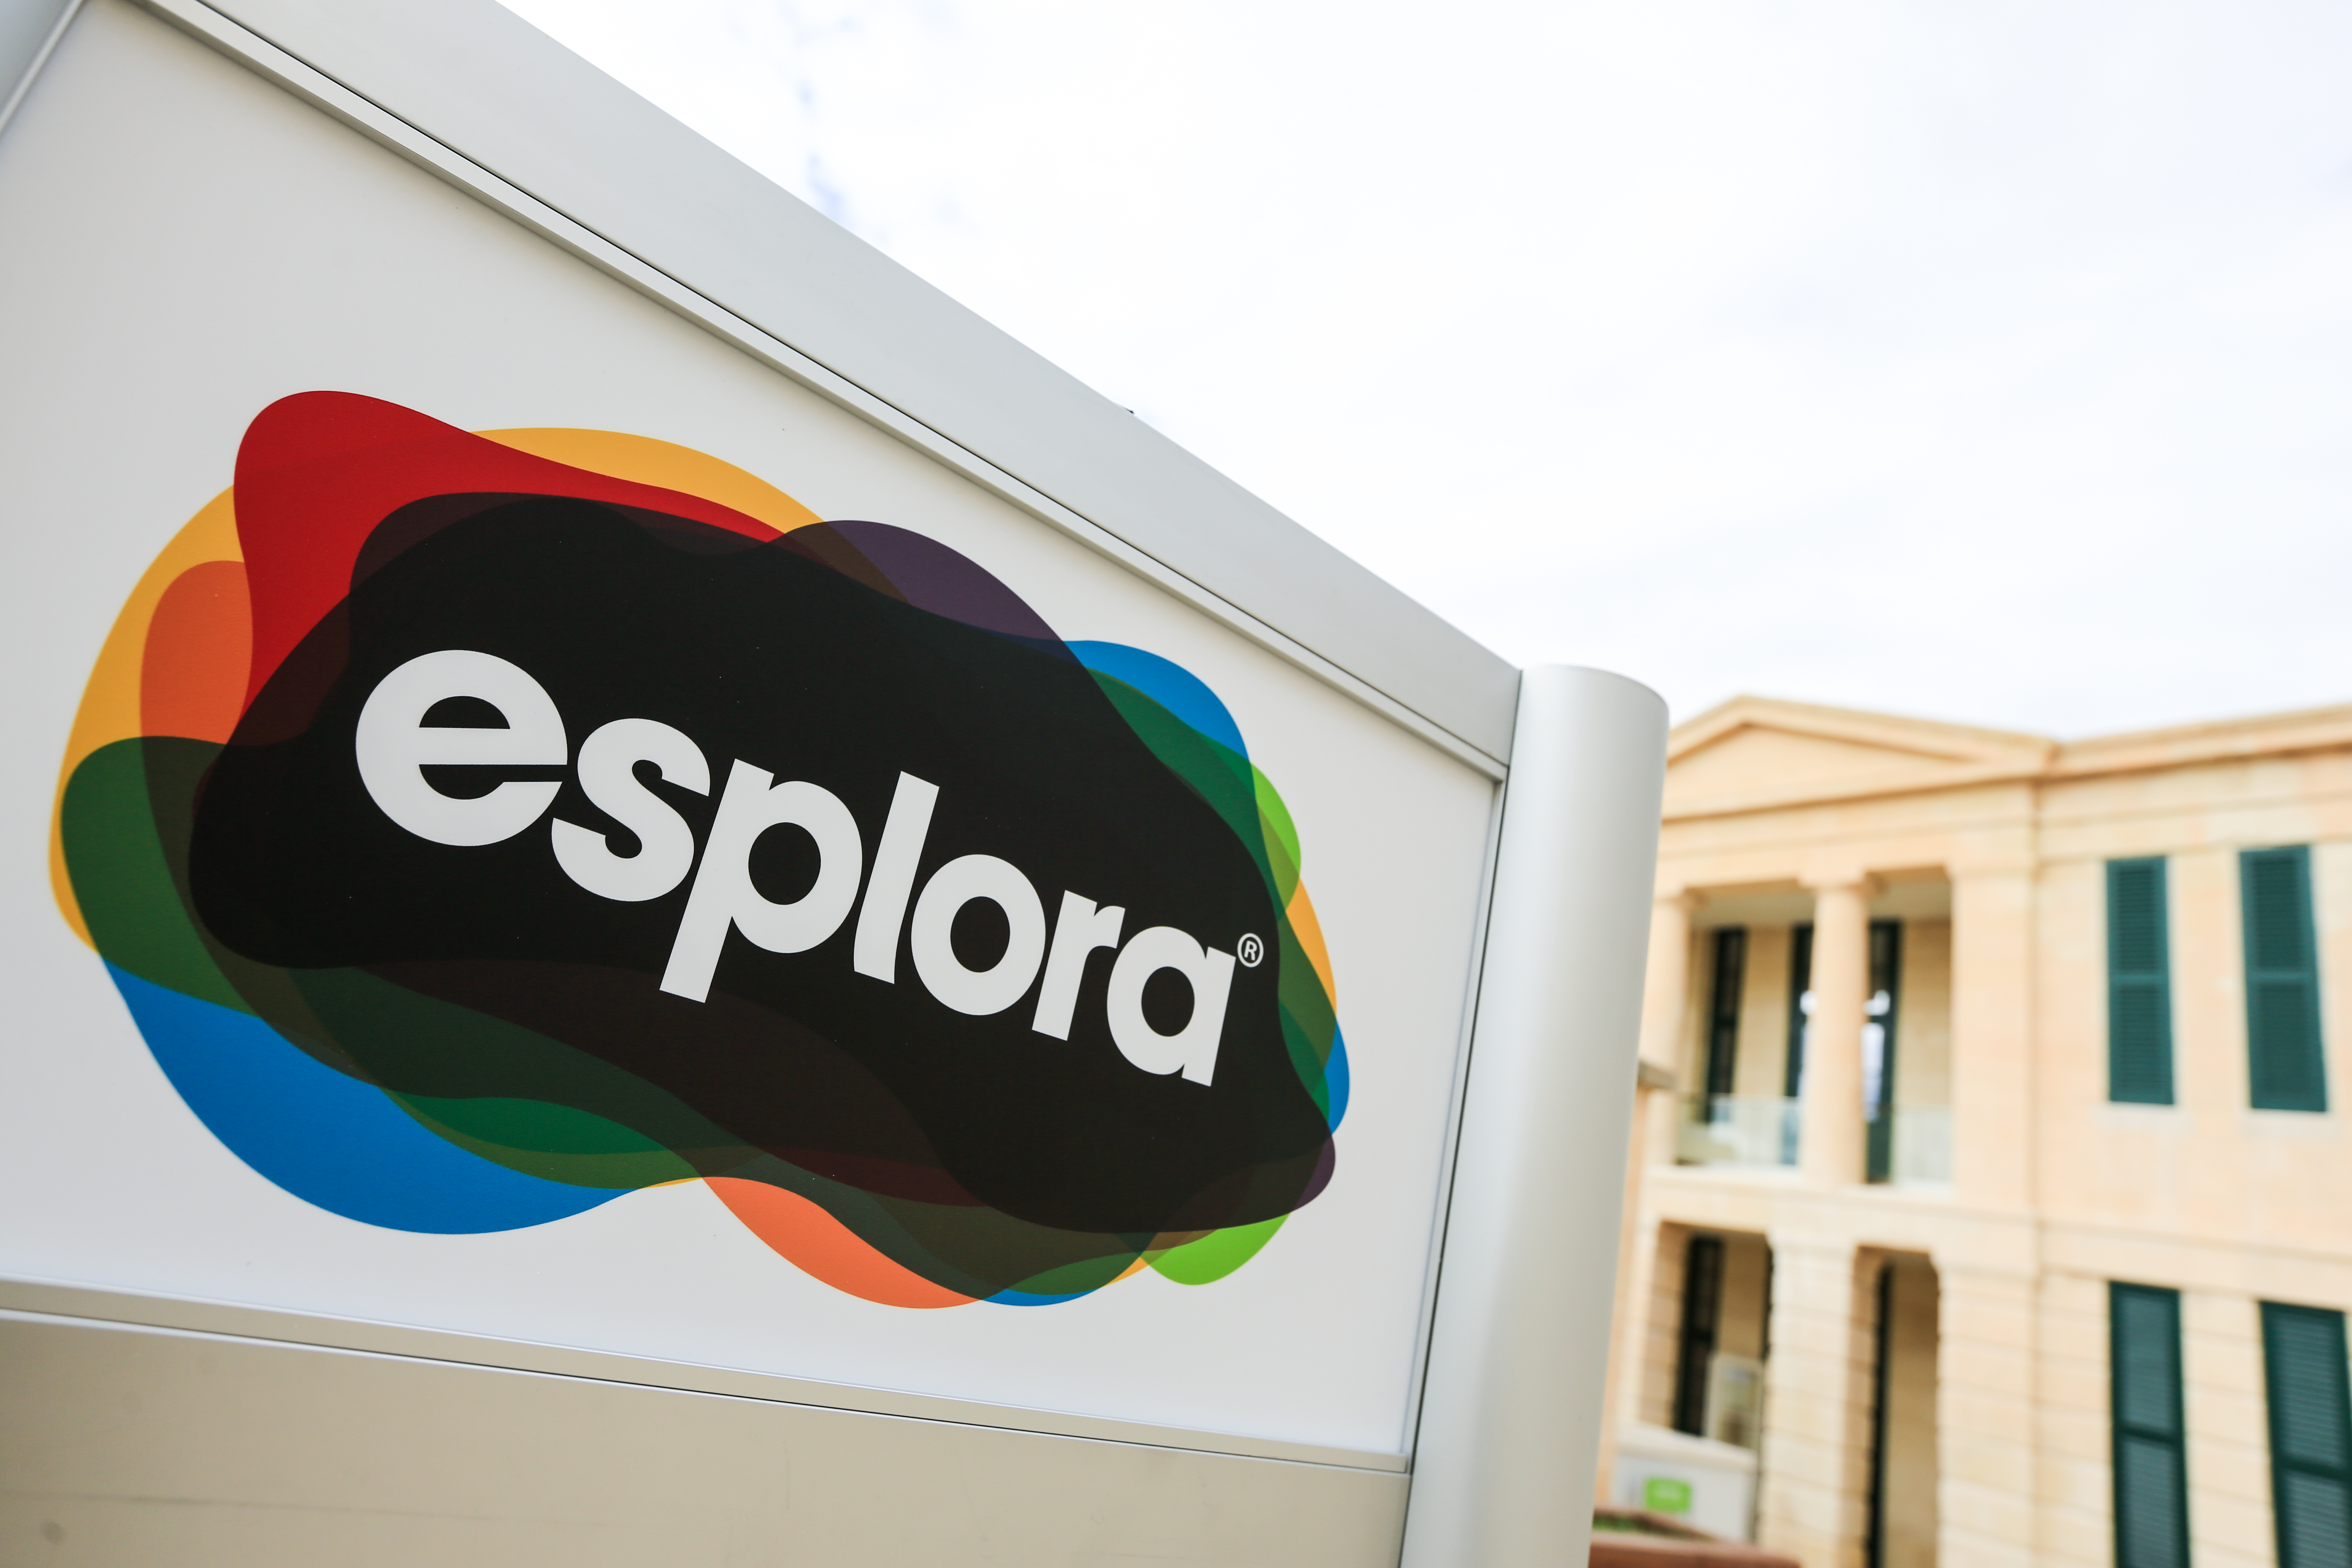 UPDATE: A special gift for all the Educators! « Esplora